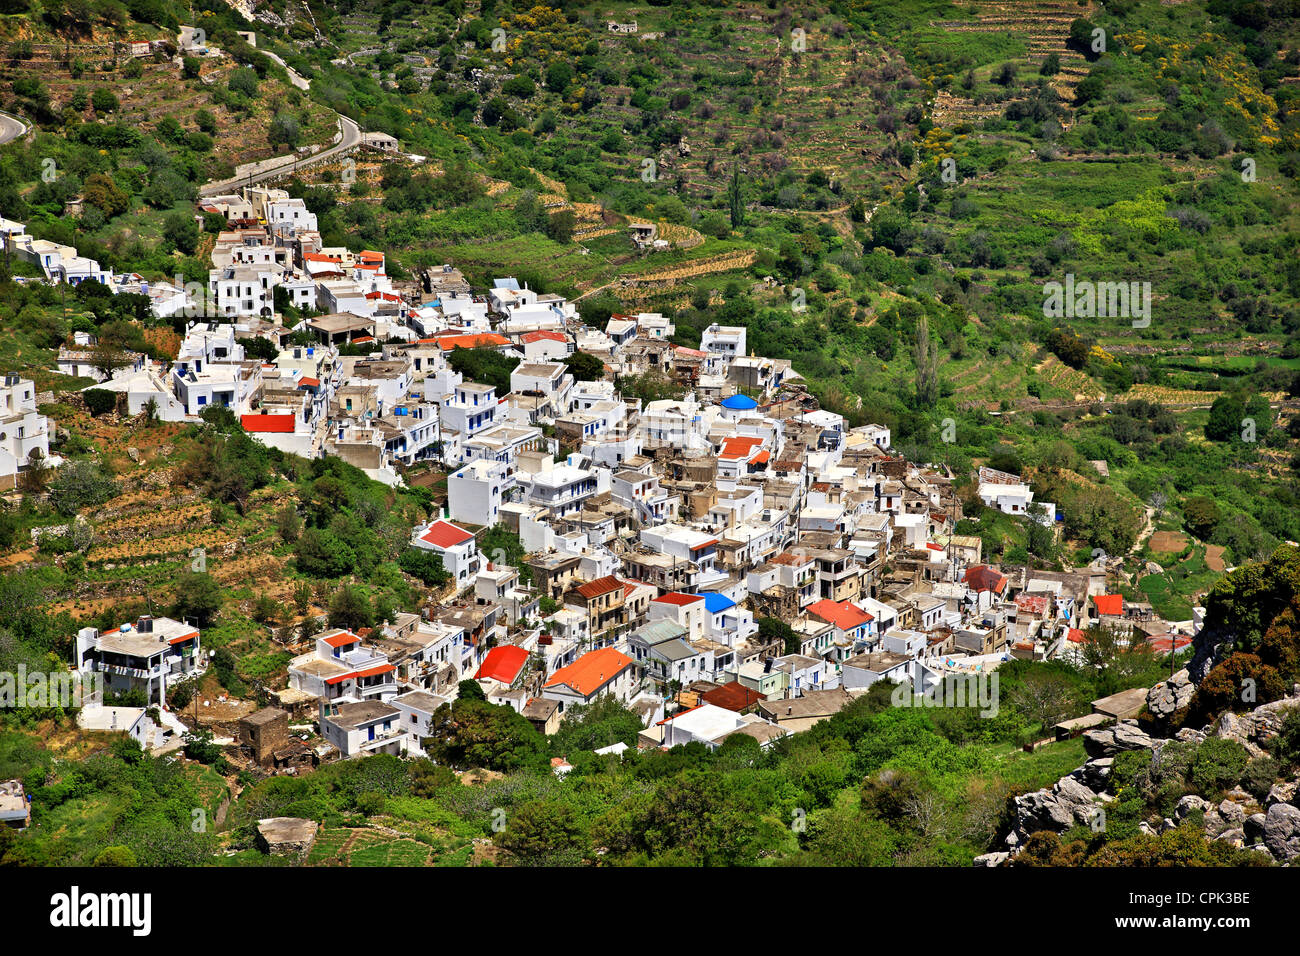 Koronos village, one of the most beautiful mountainous villages of Naxos island, Cyclades, Greece. - Stock Image